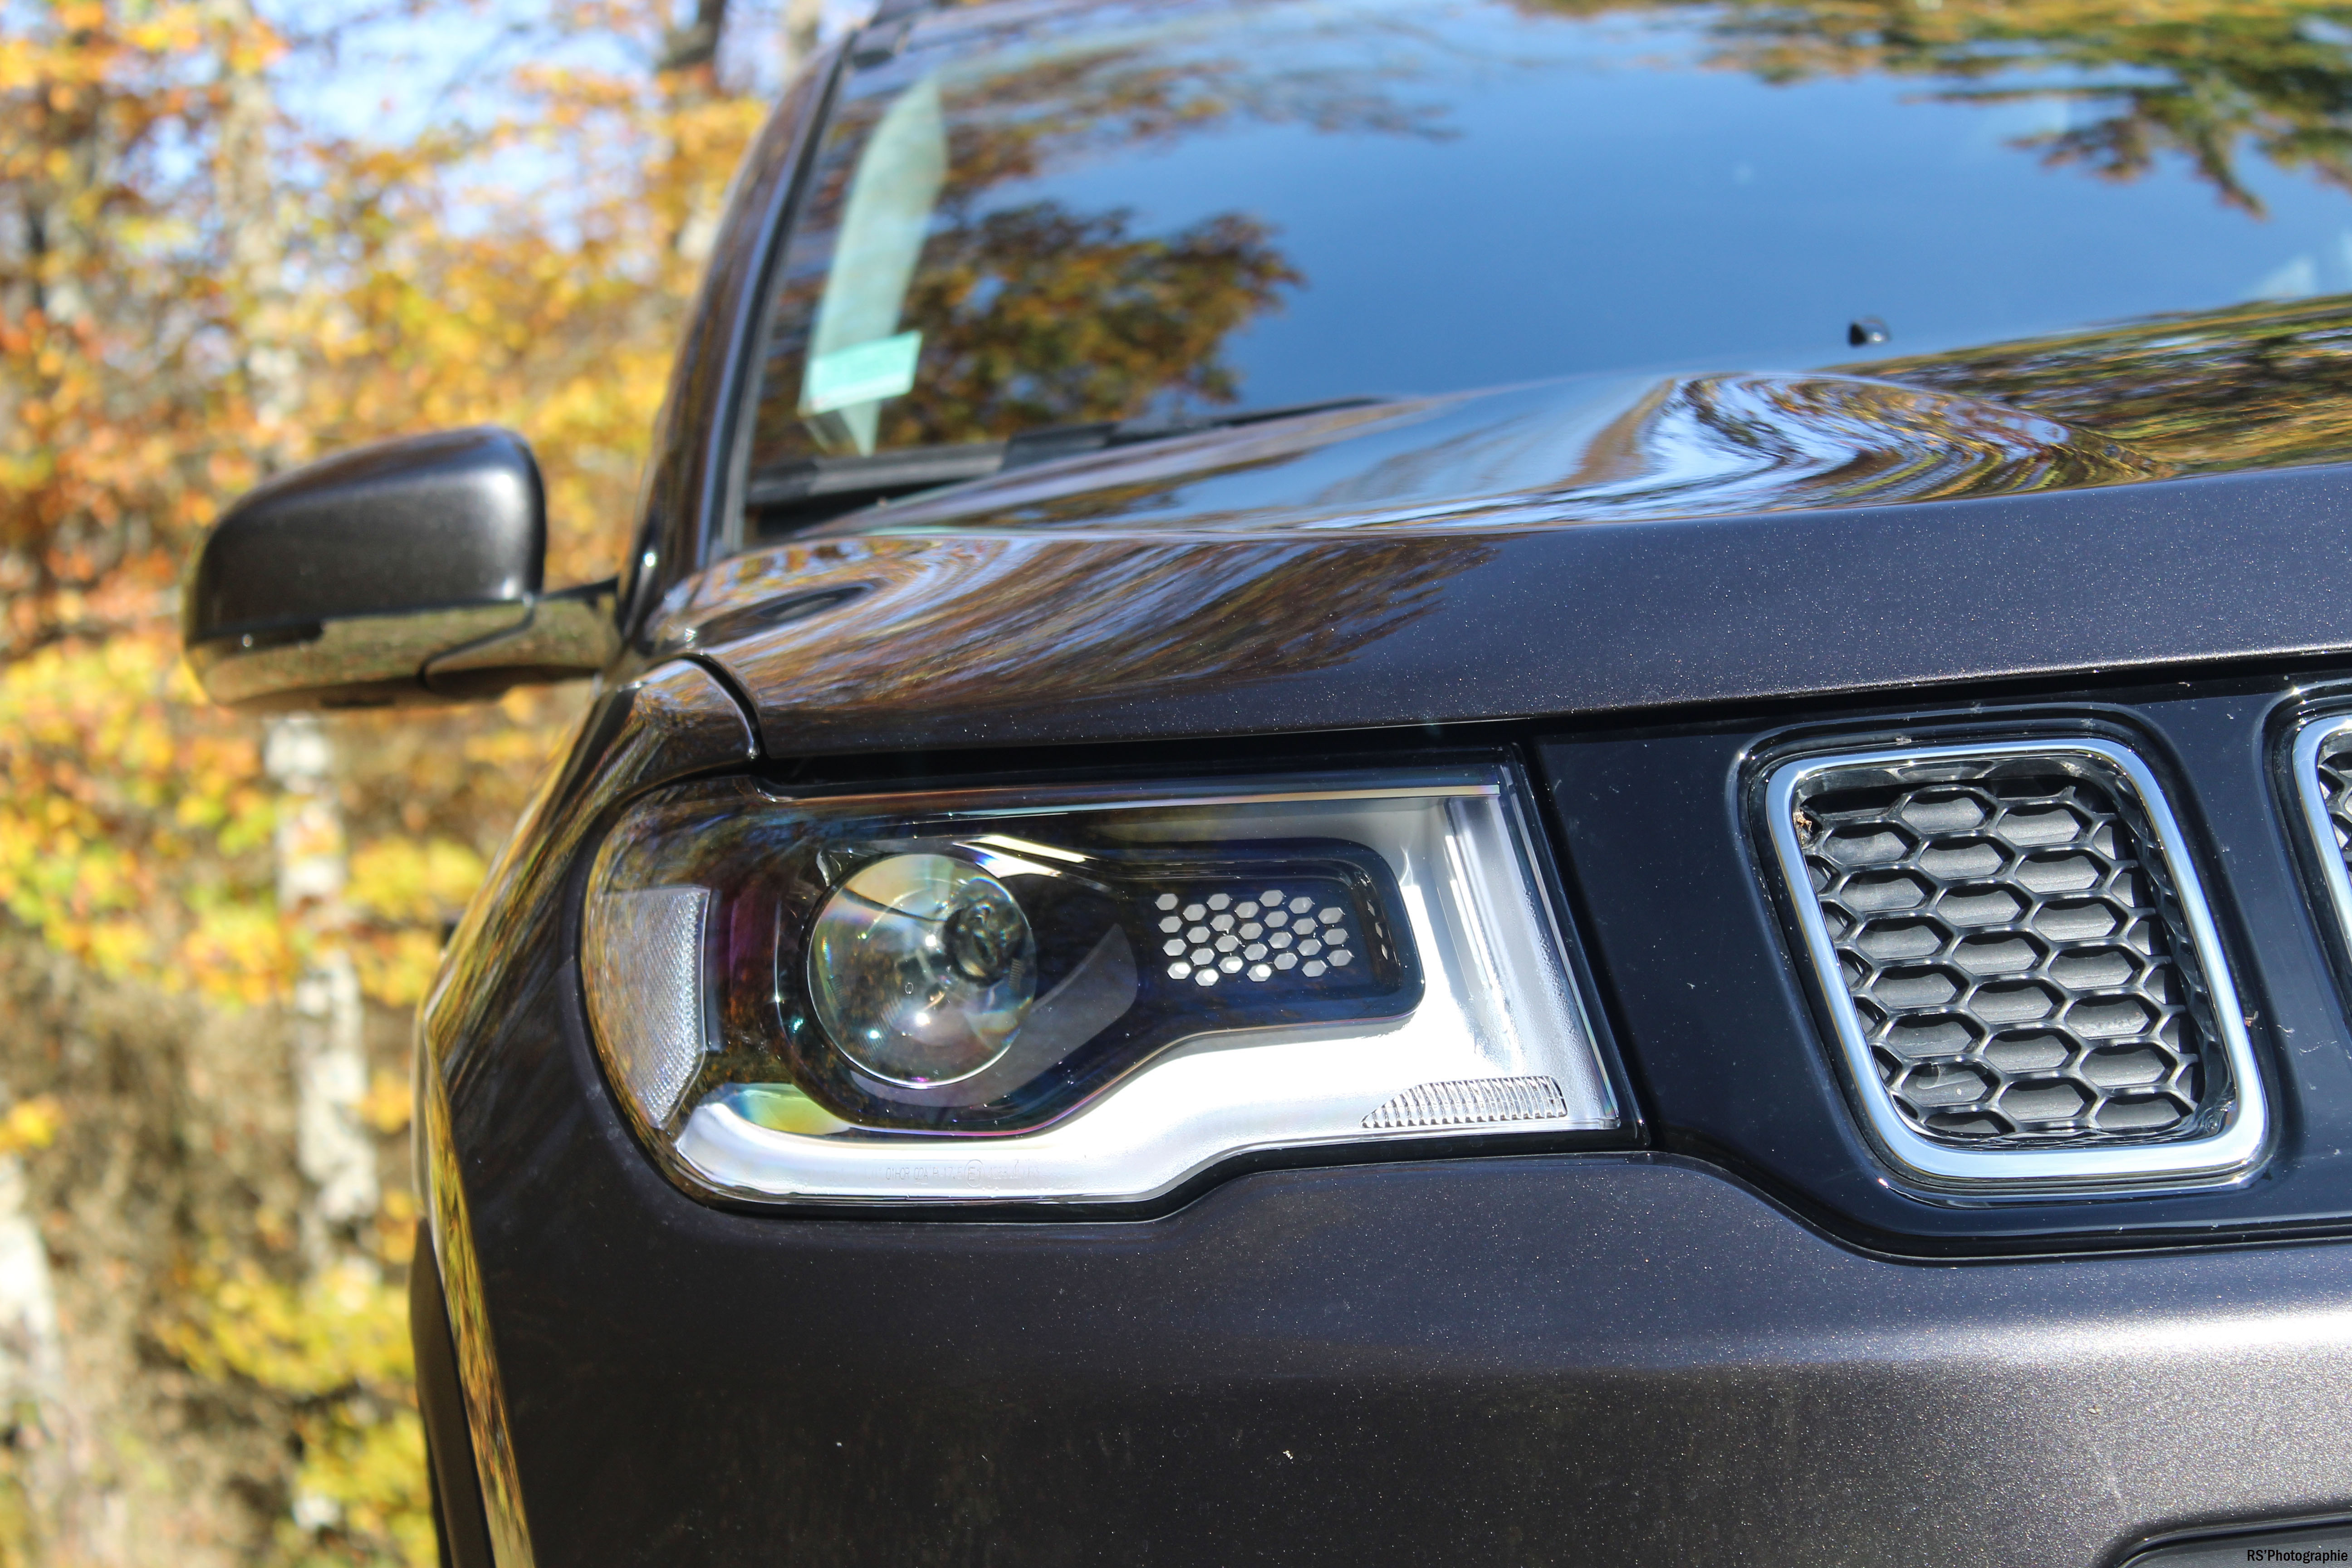 jeepcompass32-jeep-compass-avant-front-Arnaud Demasier-RSPhotographie